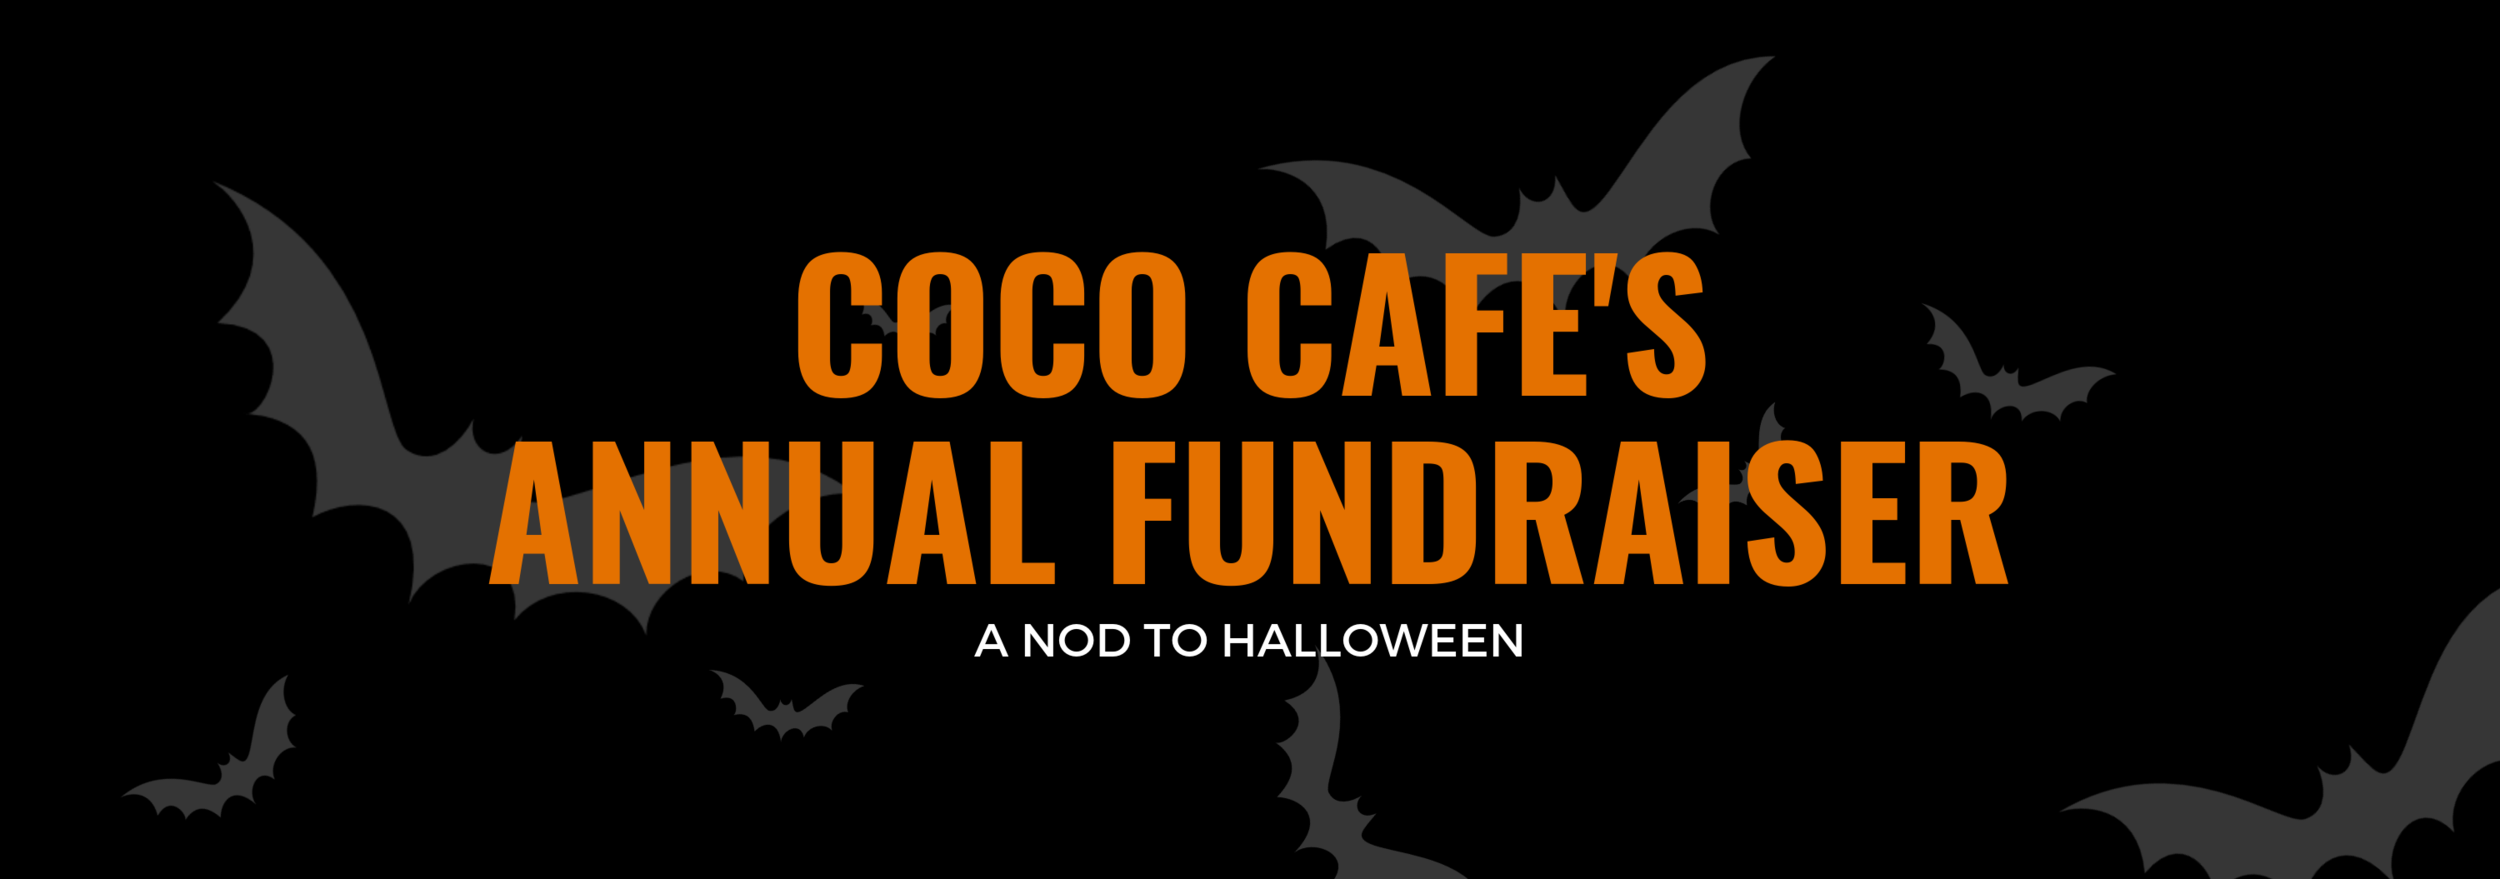 COCO CAFE's ANNUAL FUNDRAISER (1).png